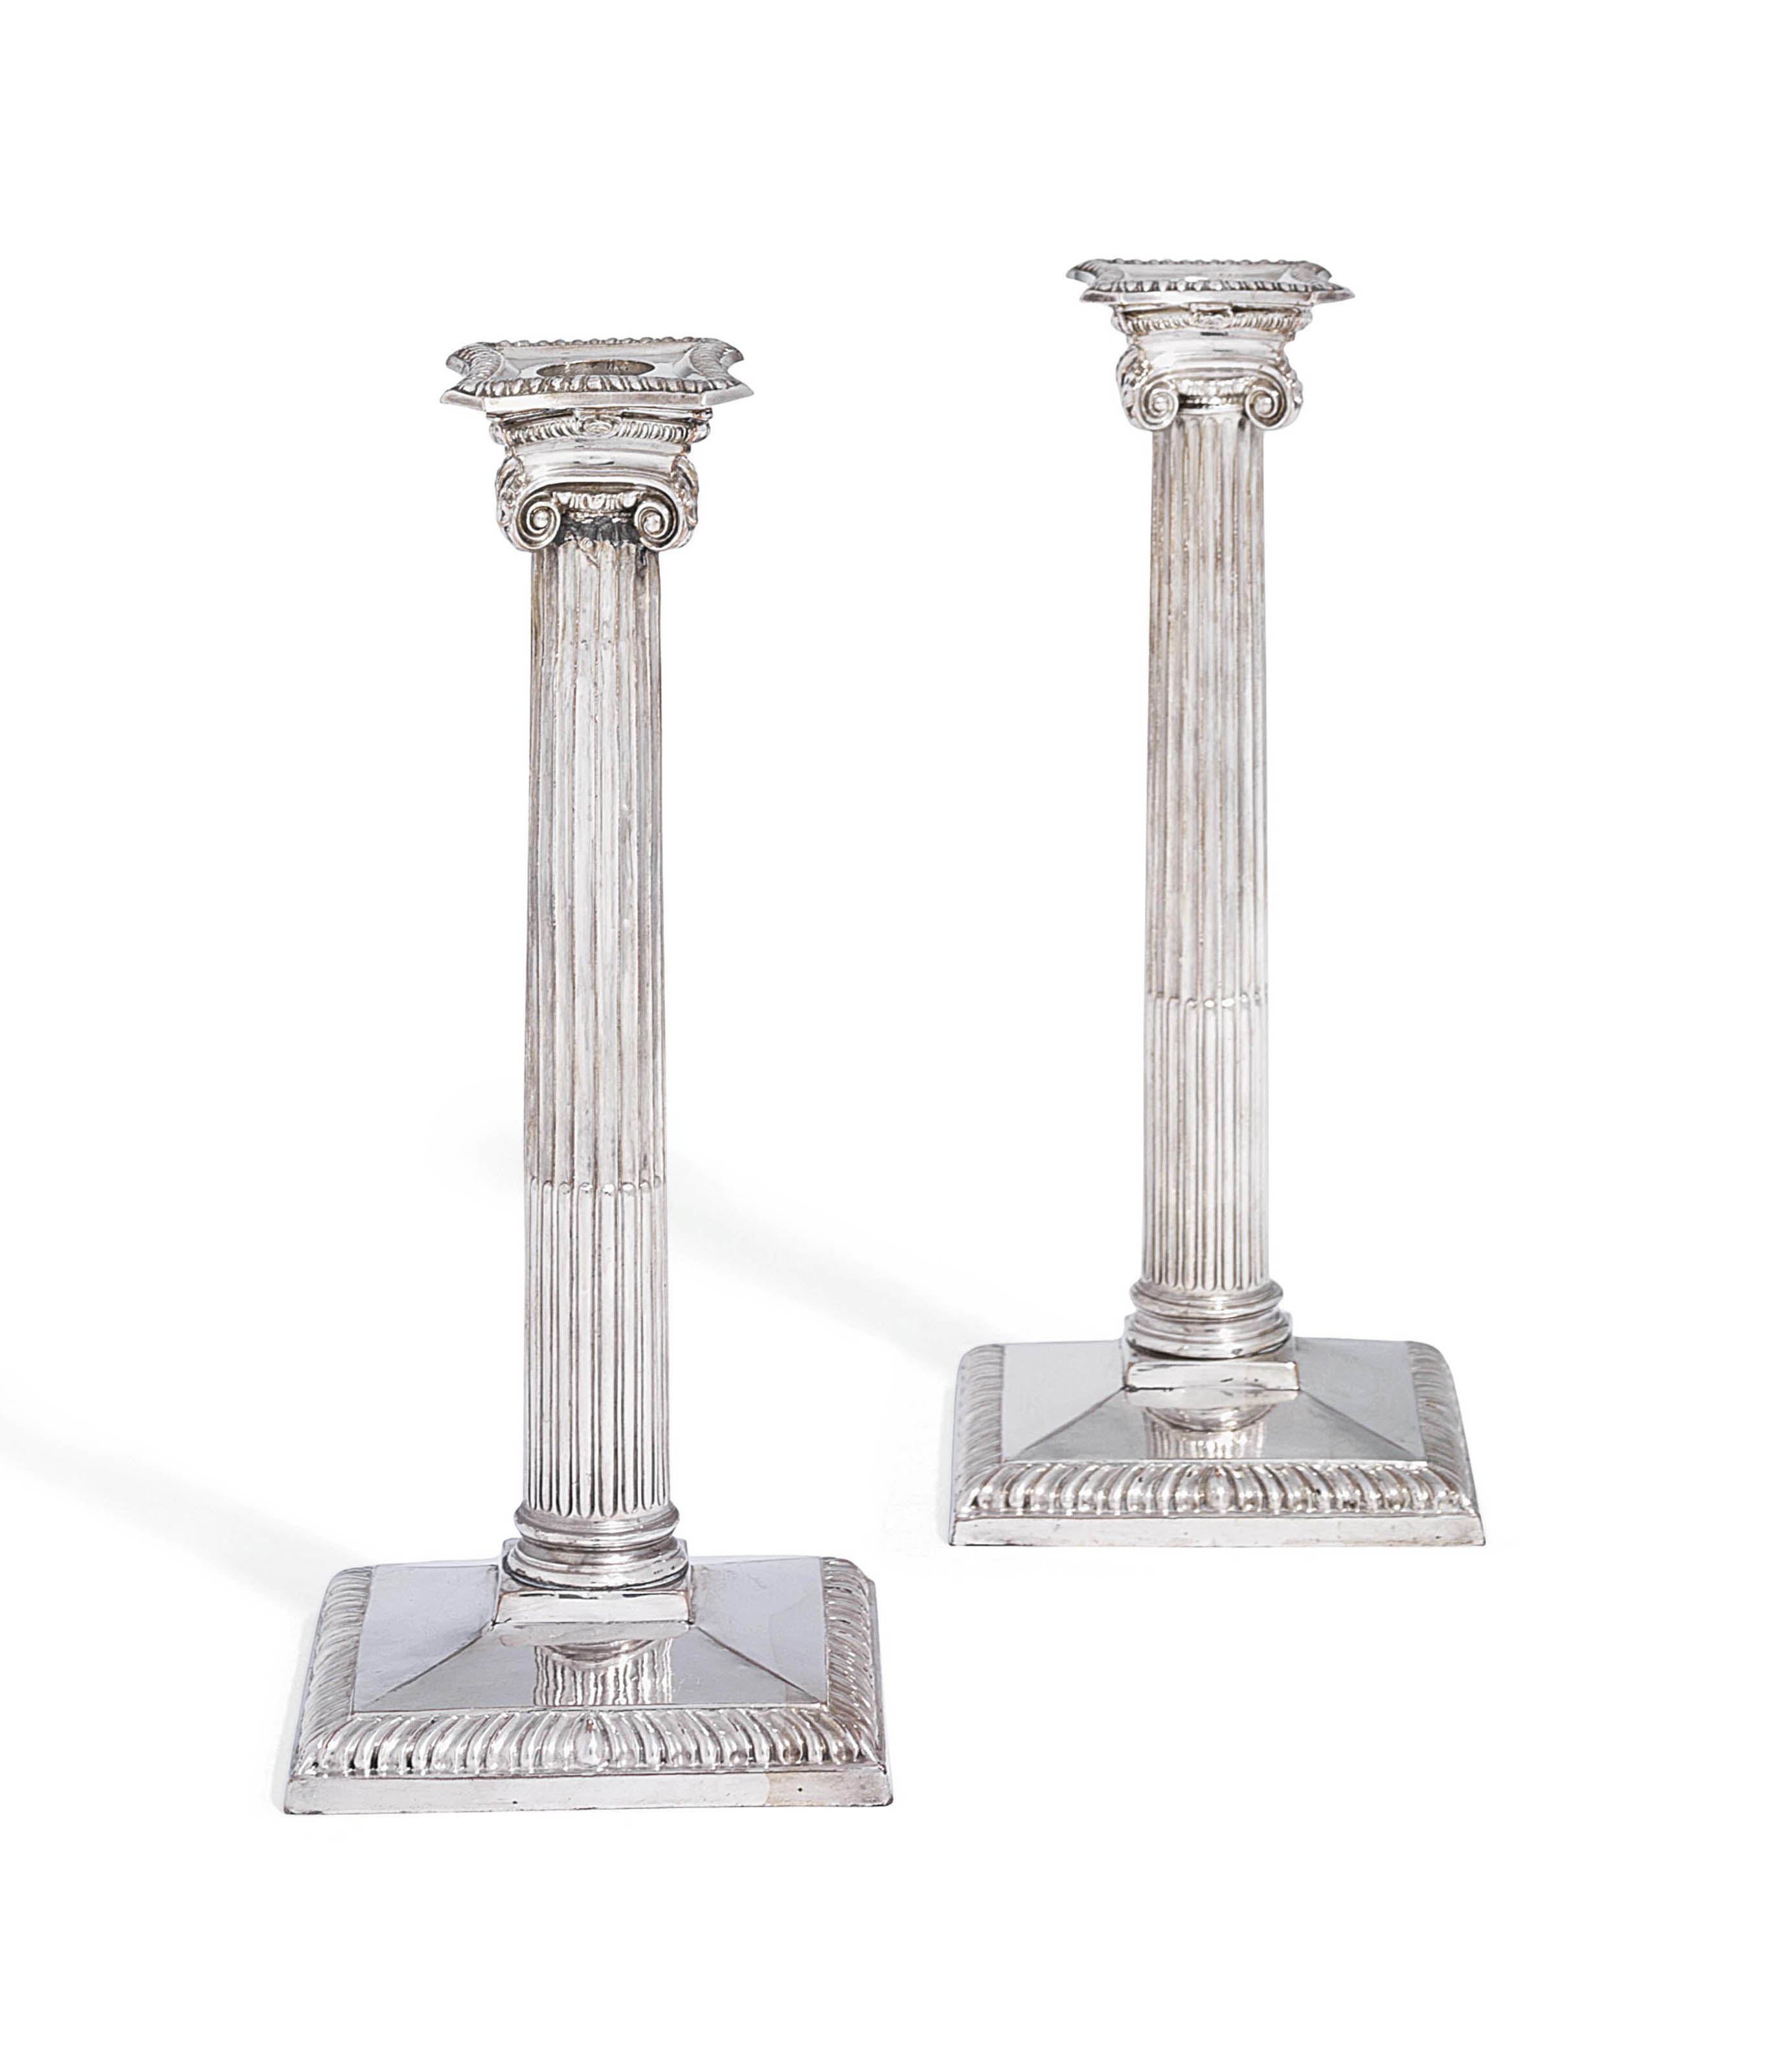 A PAIR OF GEORGE III OLD SHEFFIELD PLATE CANDLESTICKS